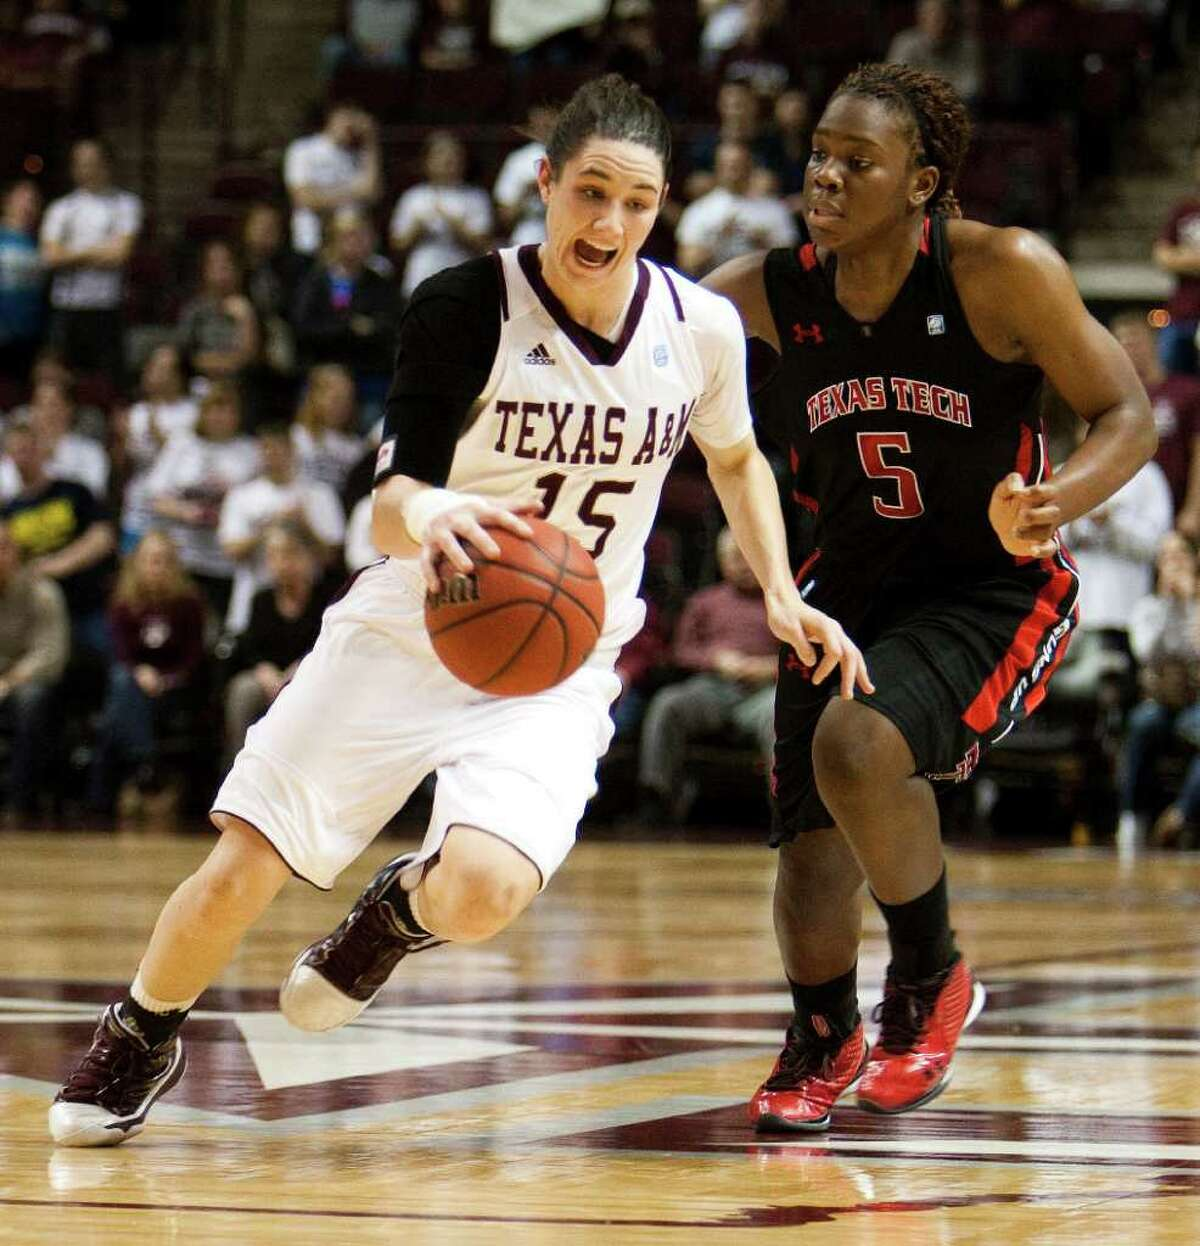 Texas A&M guard Maryann Baker (15) drives the ball against Texas Tech's Christina Hyde (5) during the first half of an NCAA college basketball game Tuesday, Feb. 22, 2011, in College Station, Texas.